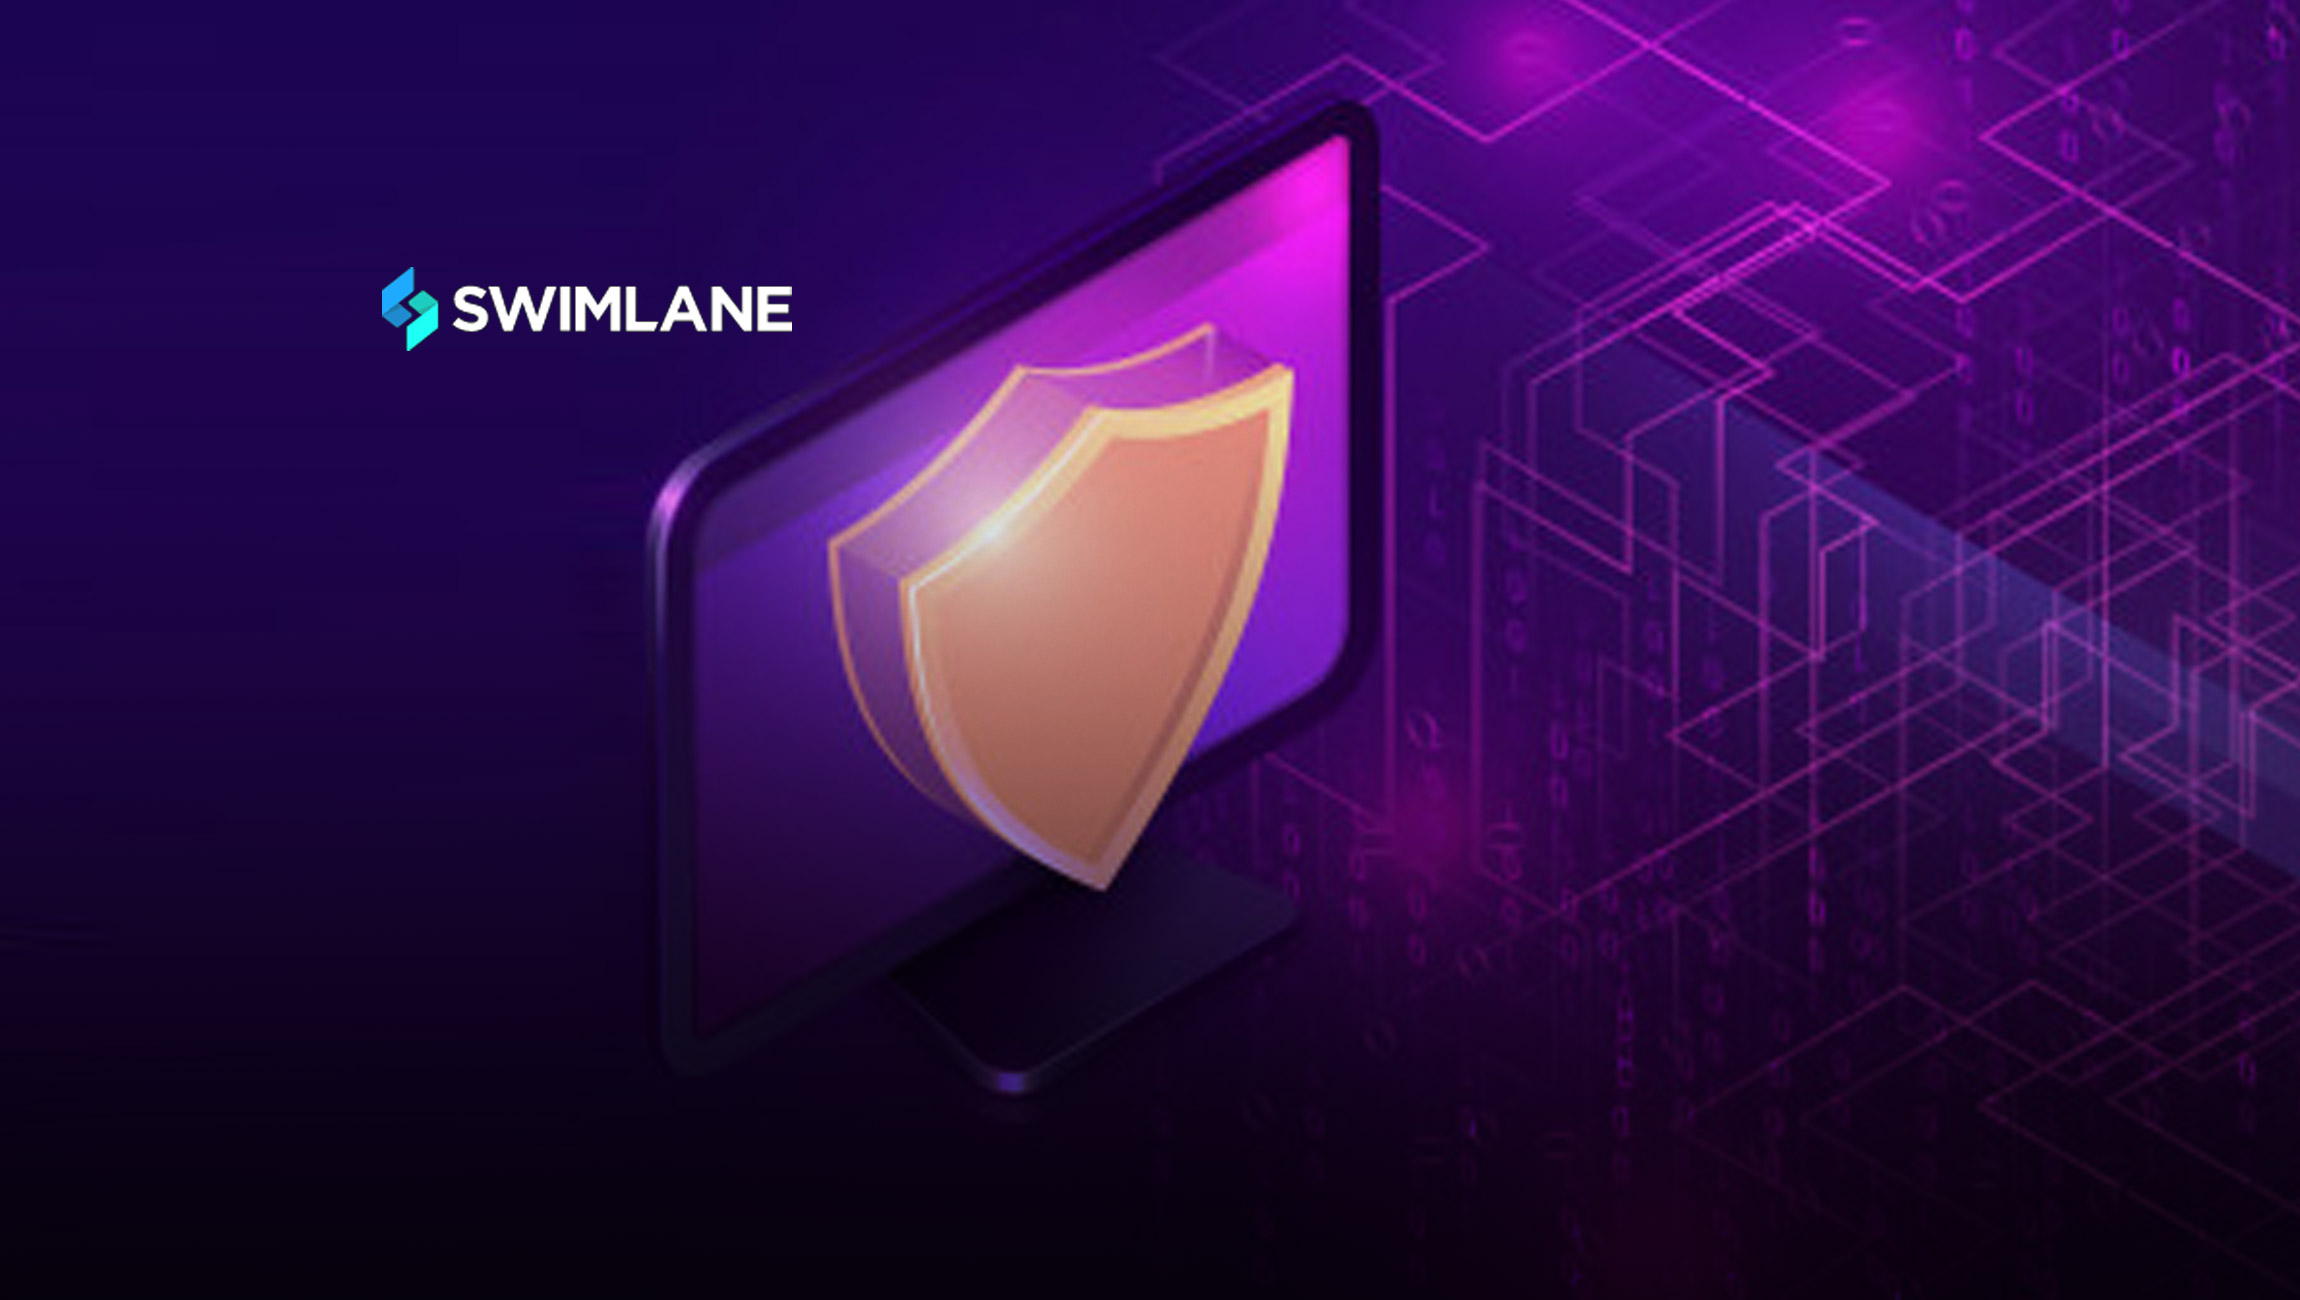 Swimlane Achieves Integration With McAfee MVISION ePO and MVISION EDR Through the McAfee Security Innovation Alliance